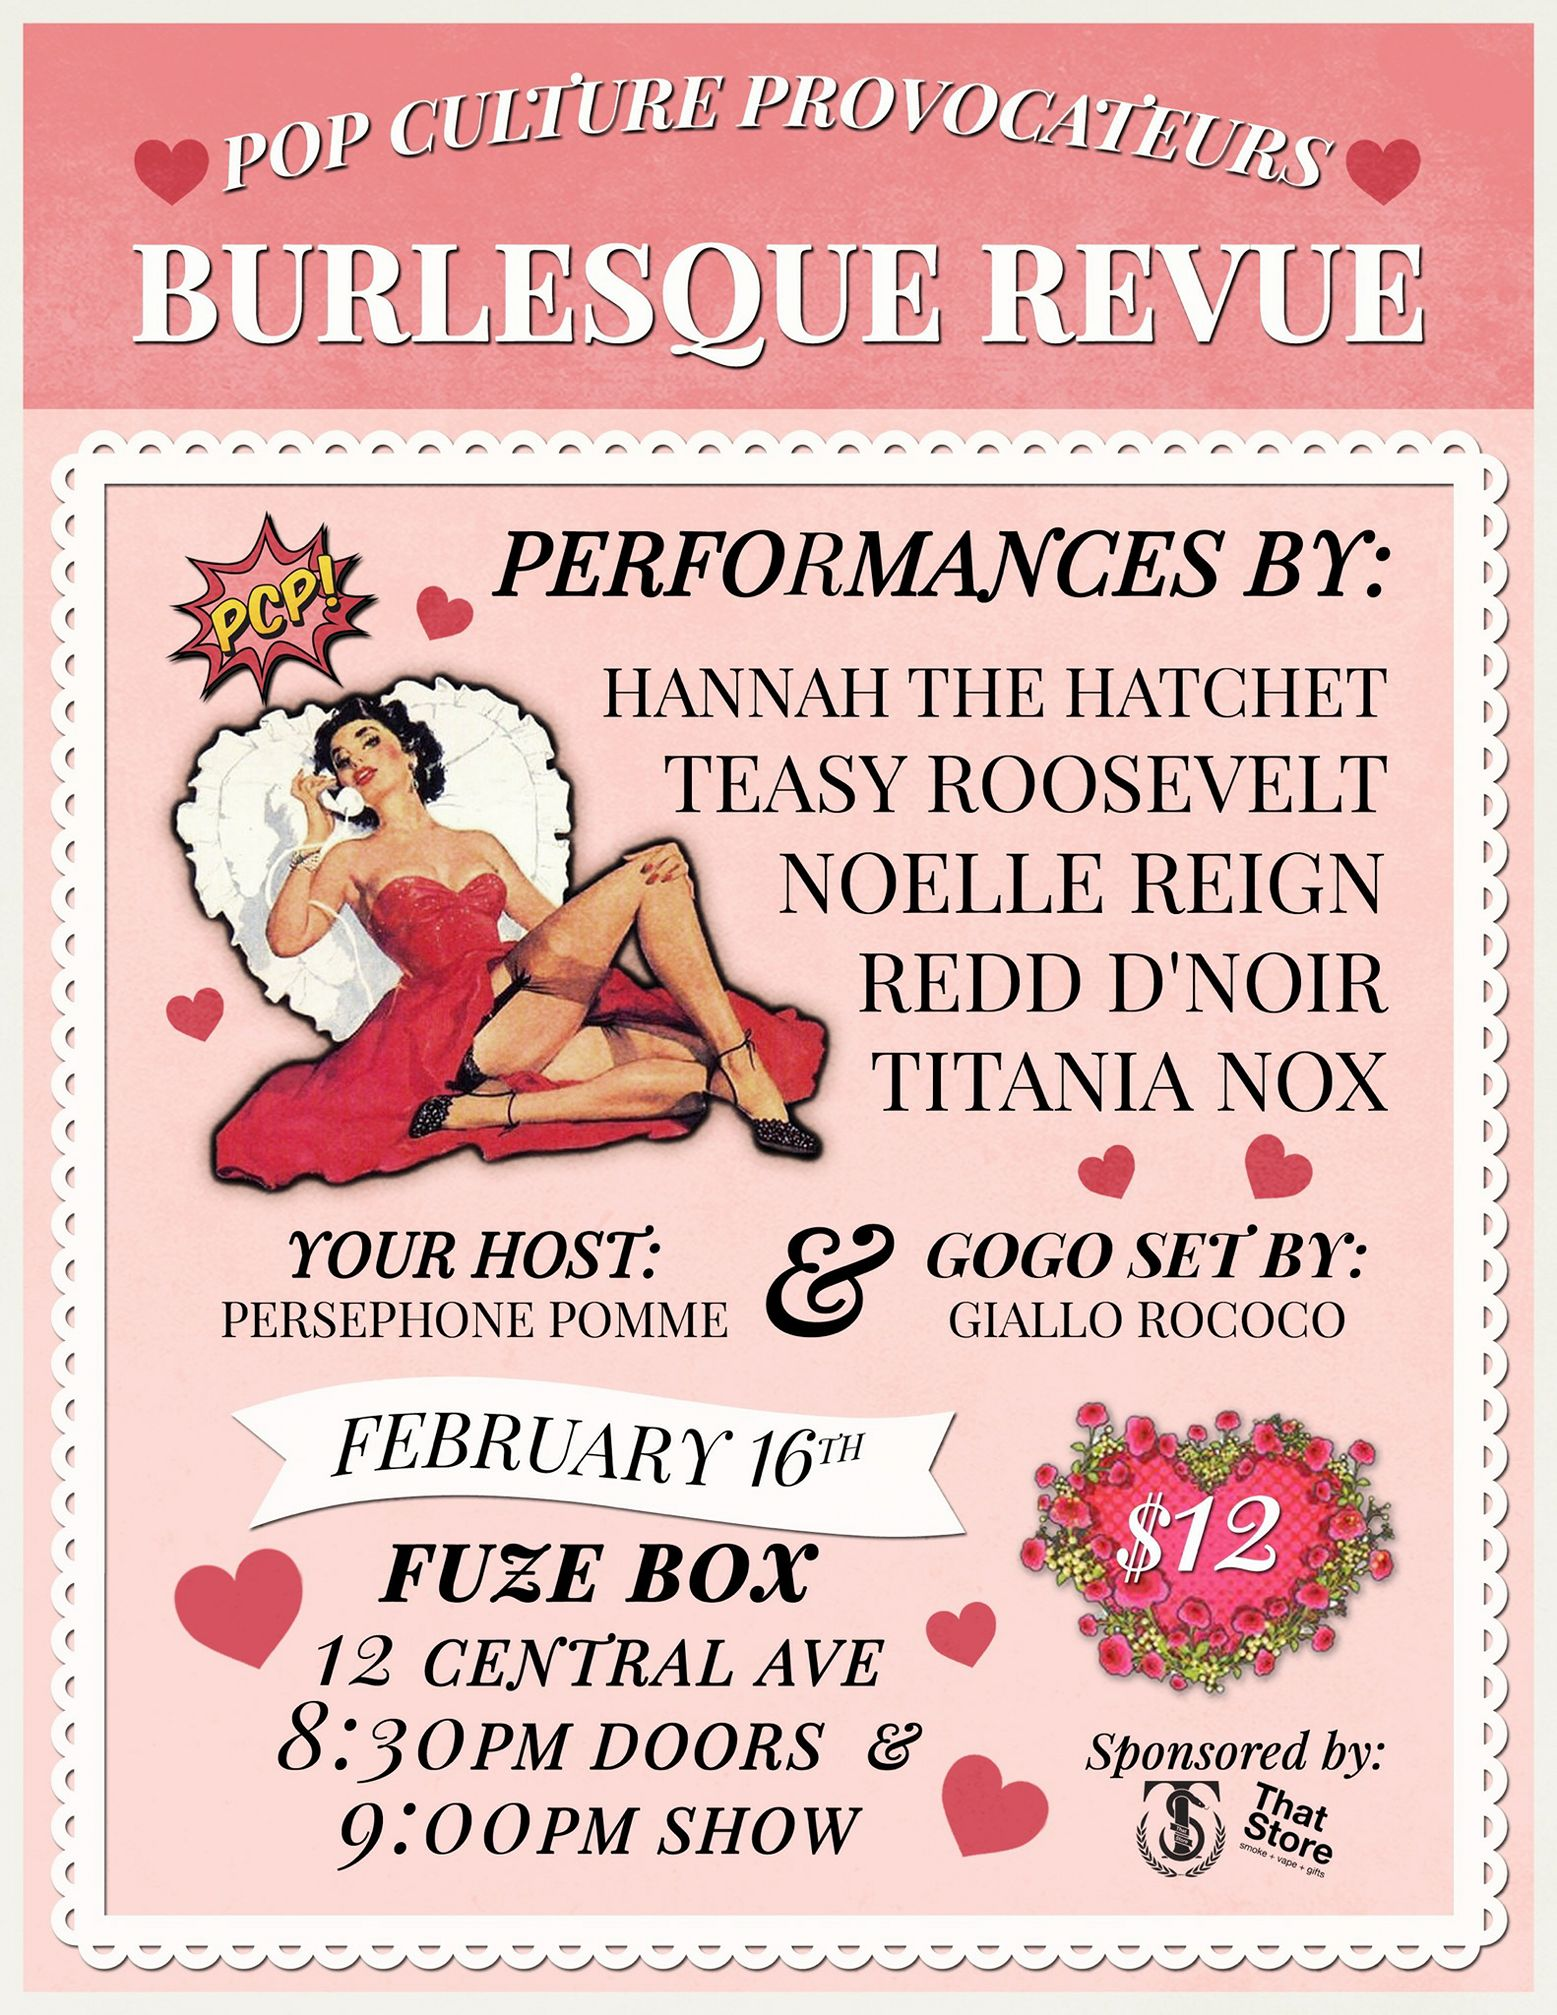 - The lovely ladies of Pop Culture Provocateurs present the February edition of their monthly Burlesque Revue!Win a $25 That Store gift card in the raffle!Join Pop Culture Provocateurs on February 16th for the next edition of their monthly burlesque revue! Whether you're looking for a night out with your sweetie or cursing stupid cupid, we are here to cure your mid-winter blues with the most entertaining ecdysiasts in town!Featuring performances by...HANNAH THE HATCHET (Whiskey Tango Sideshow)NOELLE REIGNTEASY ROOSEVELTTITANIA NOXREDD D'NOIR Your host...PERSEPHONE POMMEStage kitten and gogo extraordinaire...GIALLO ROCOCOFUZE BOX12 CENTRAL AVE830PM DOORS // 9PM SHOW$12STICK AROUND AND PARTY FOR THE TWO YEAR ANNIVERSARY OF BODYSHINE!